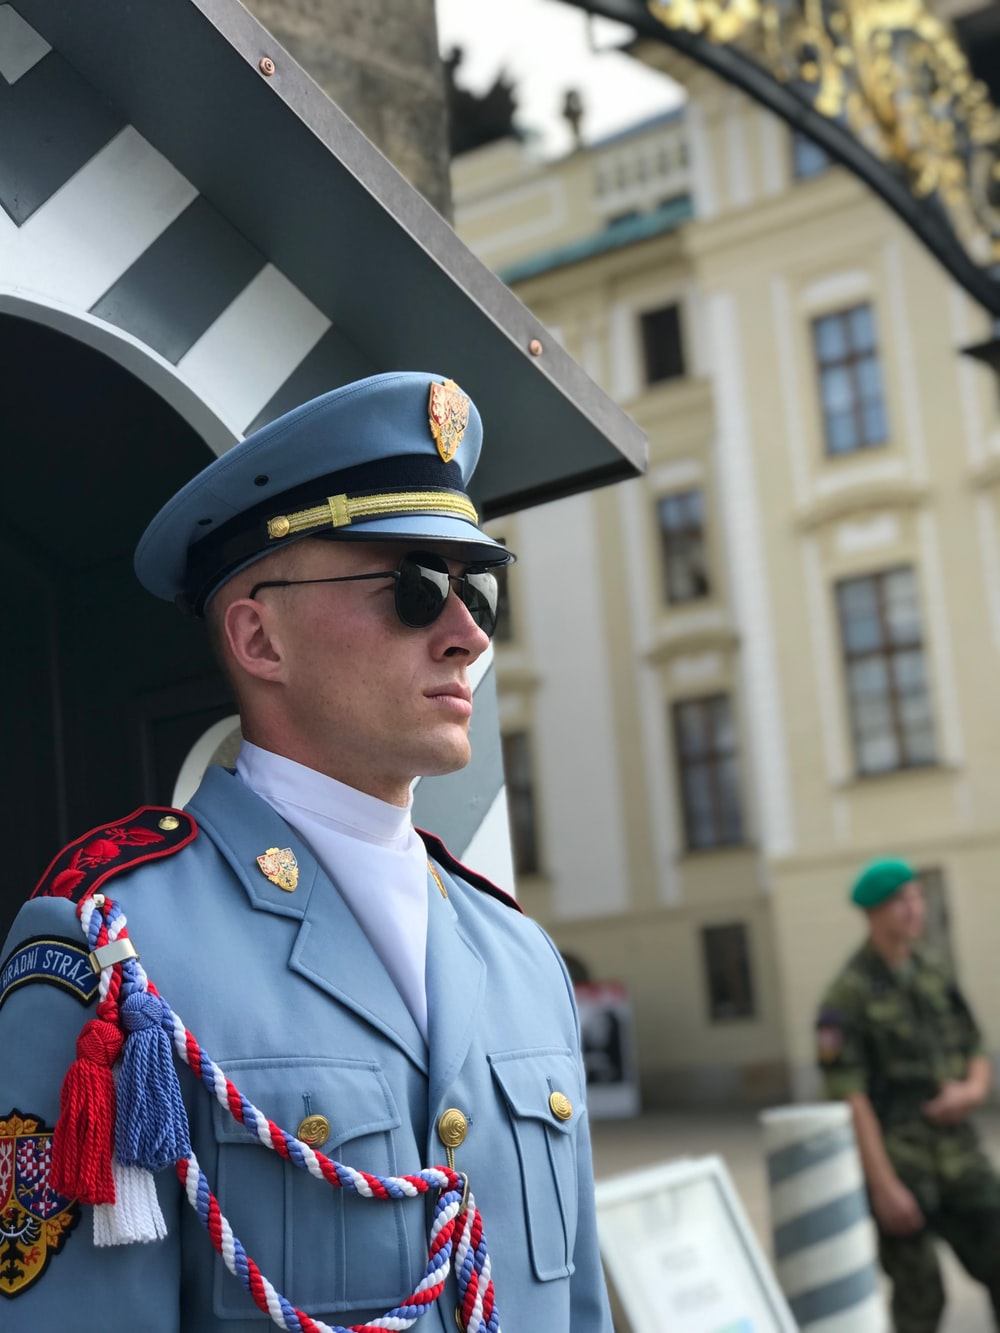 man in blue and red uniform wearing black sunglasses